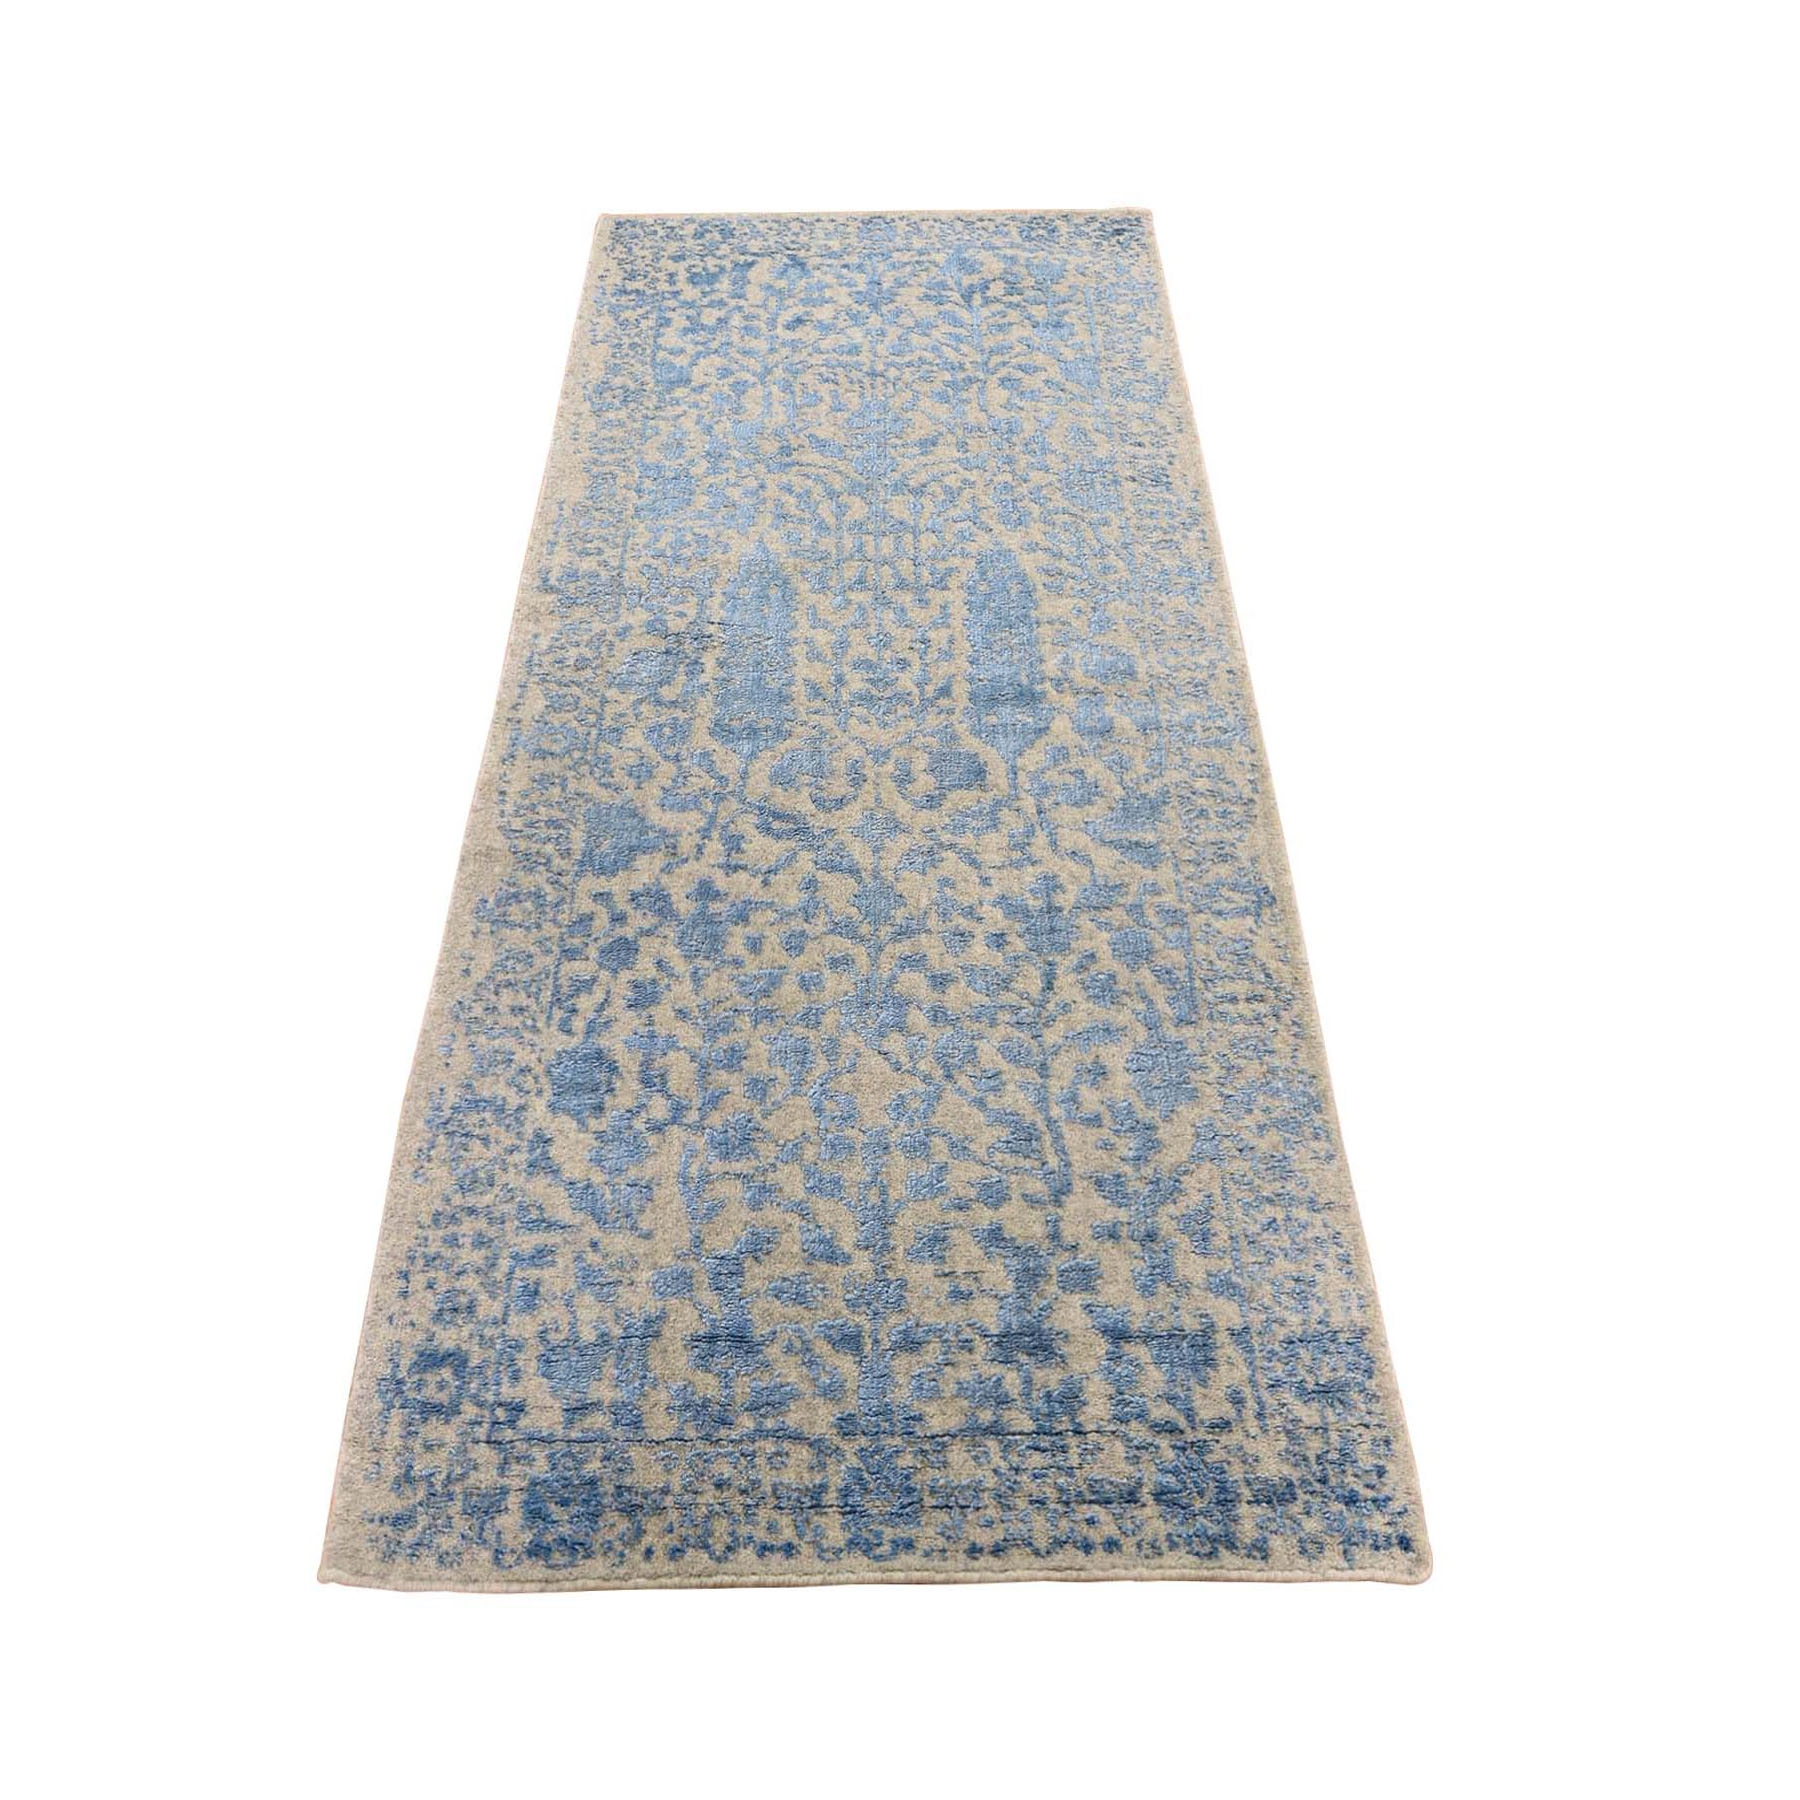 "2'5""x6'2"" Jacquard Hand Loomed Blue Broken Cypress Tree Design Silken Thick And Plush Runner Oriental Rug"